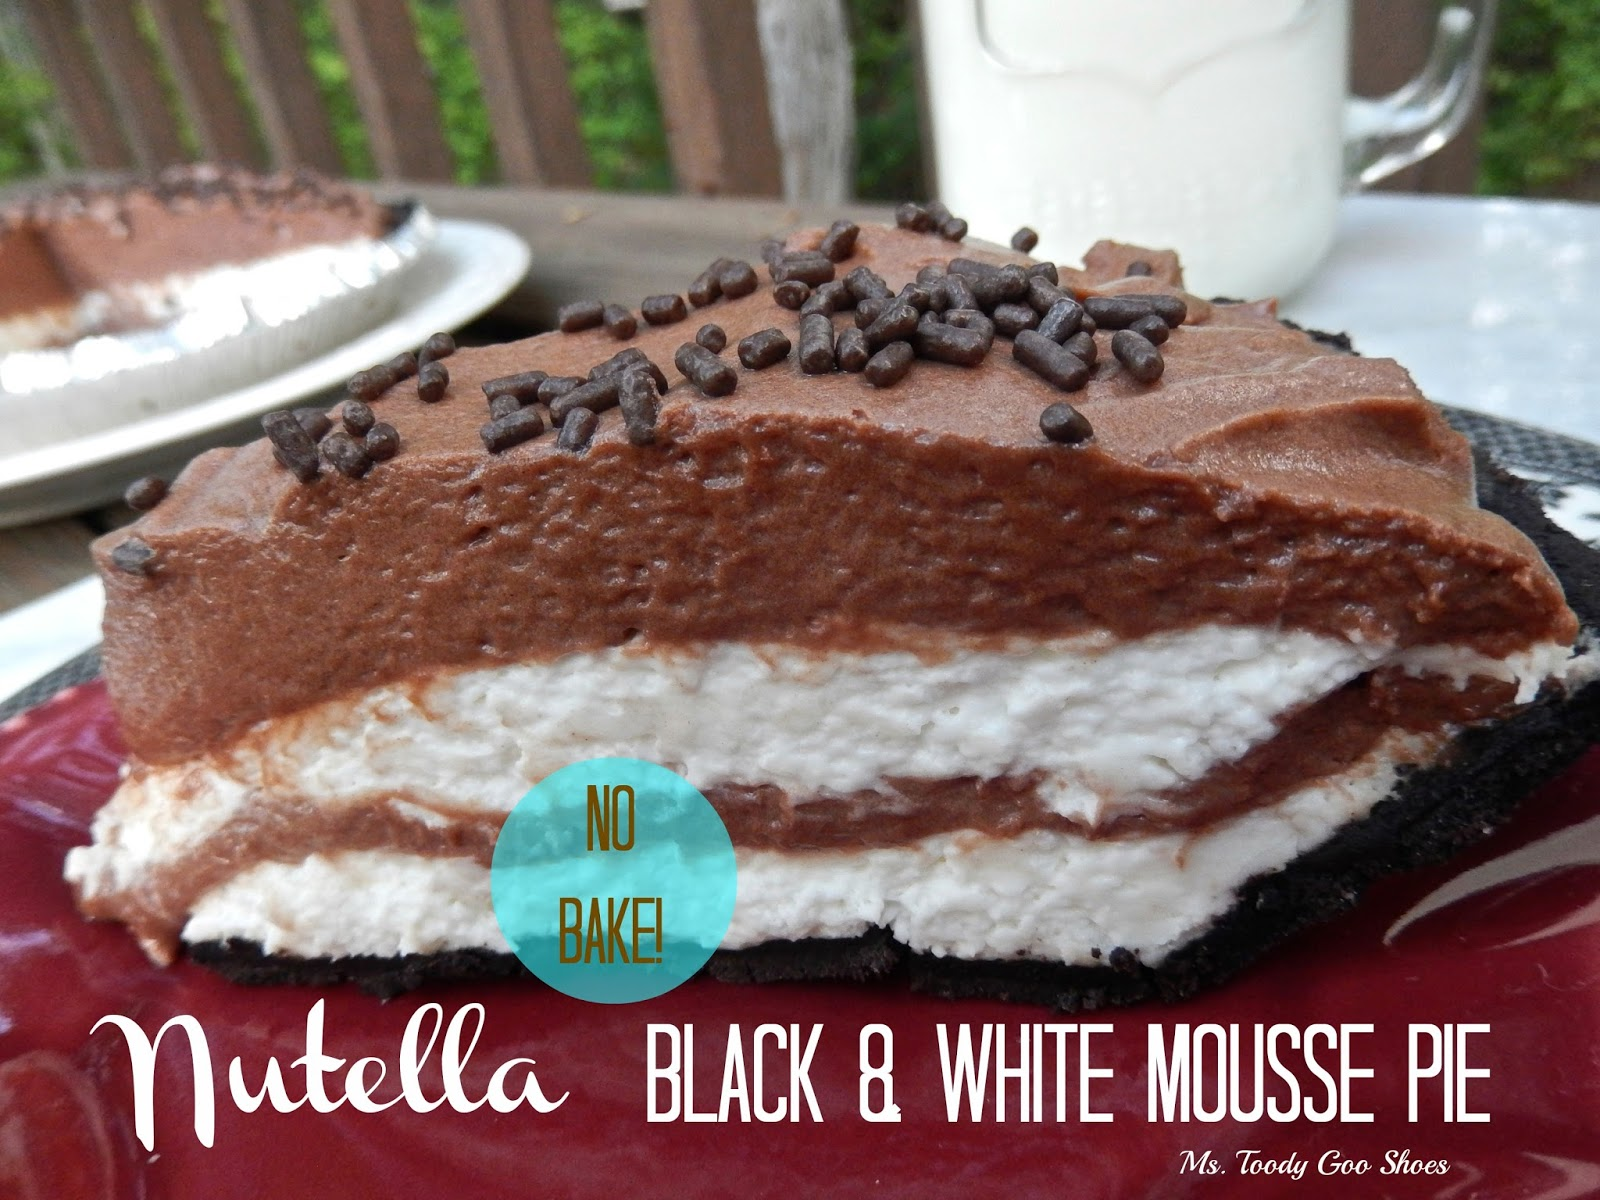 Nutella Black and White Mousse Pie -One of my top five dessert recipes of 2014